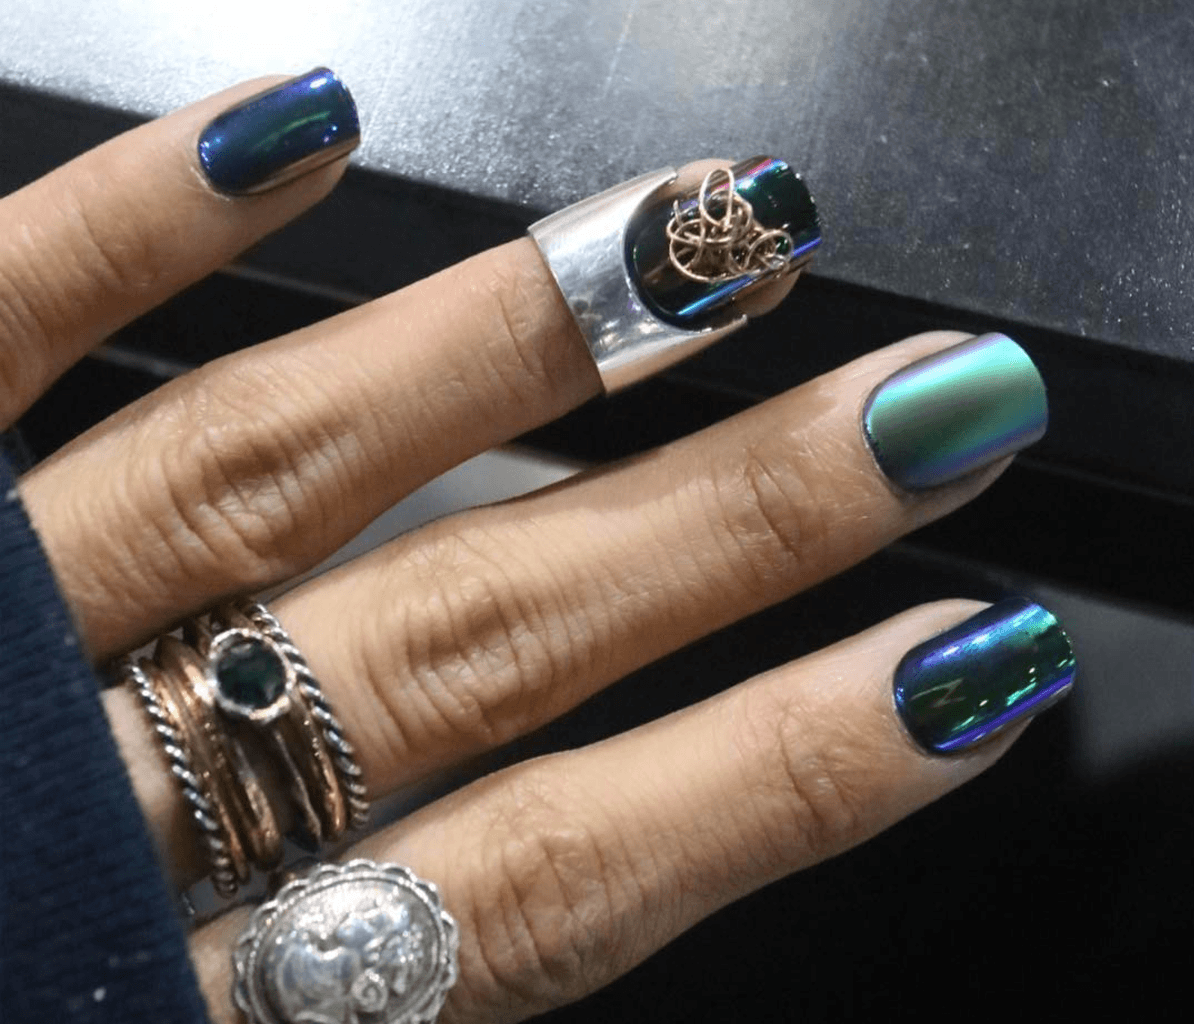 7 Of The Most Creative Trends In Korean Nail Art That Will Your Mind